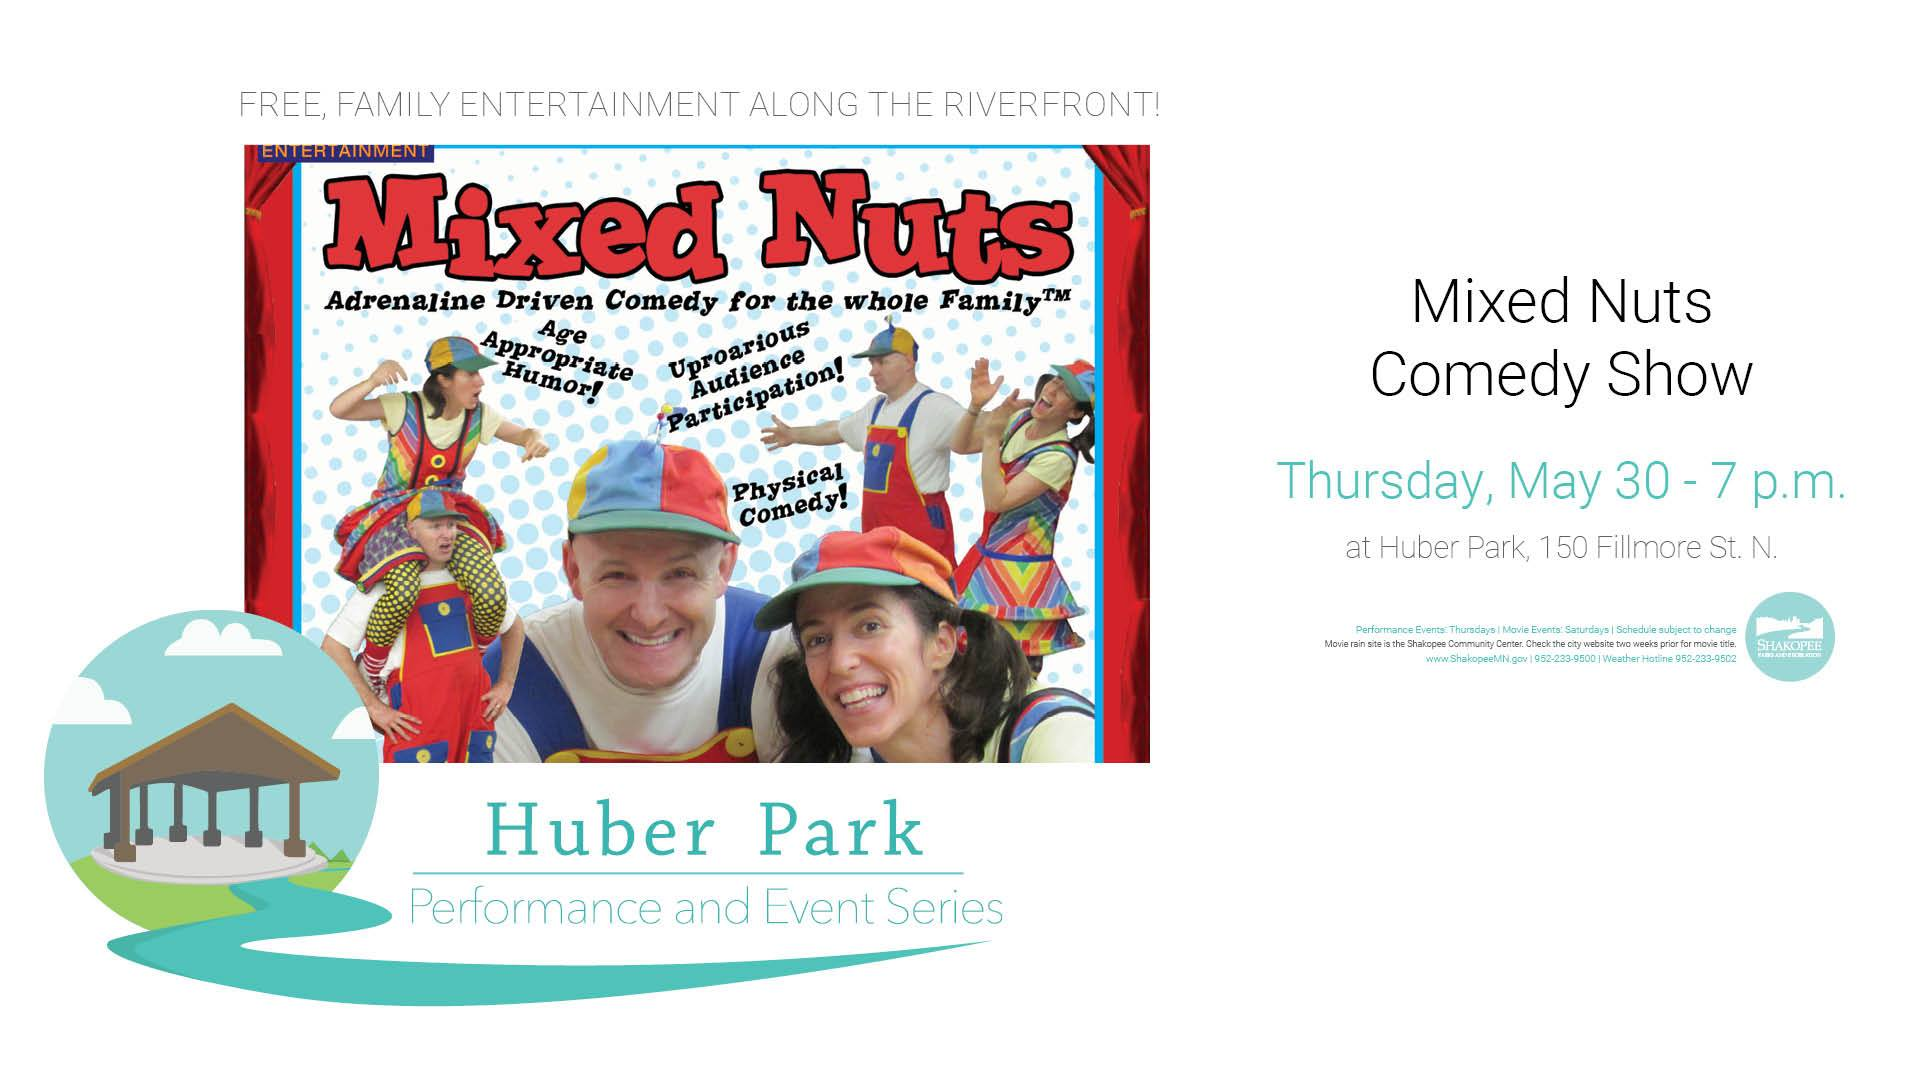 Mixed Nuts Comedy Show